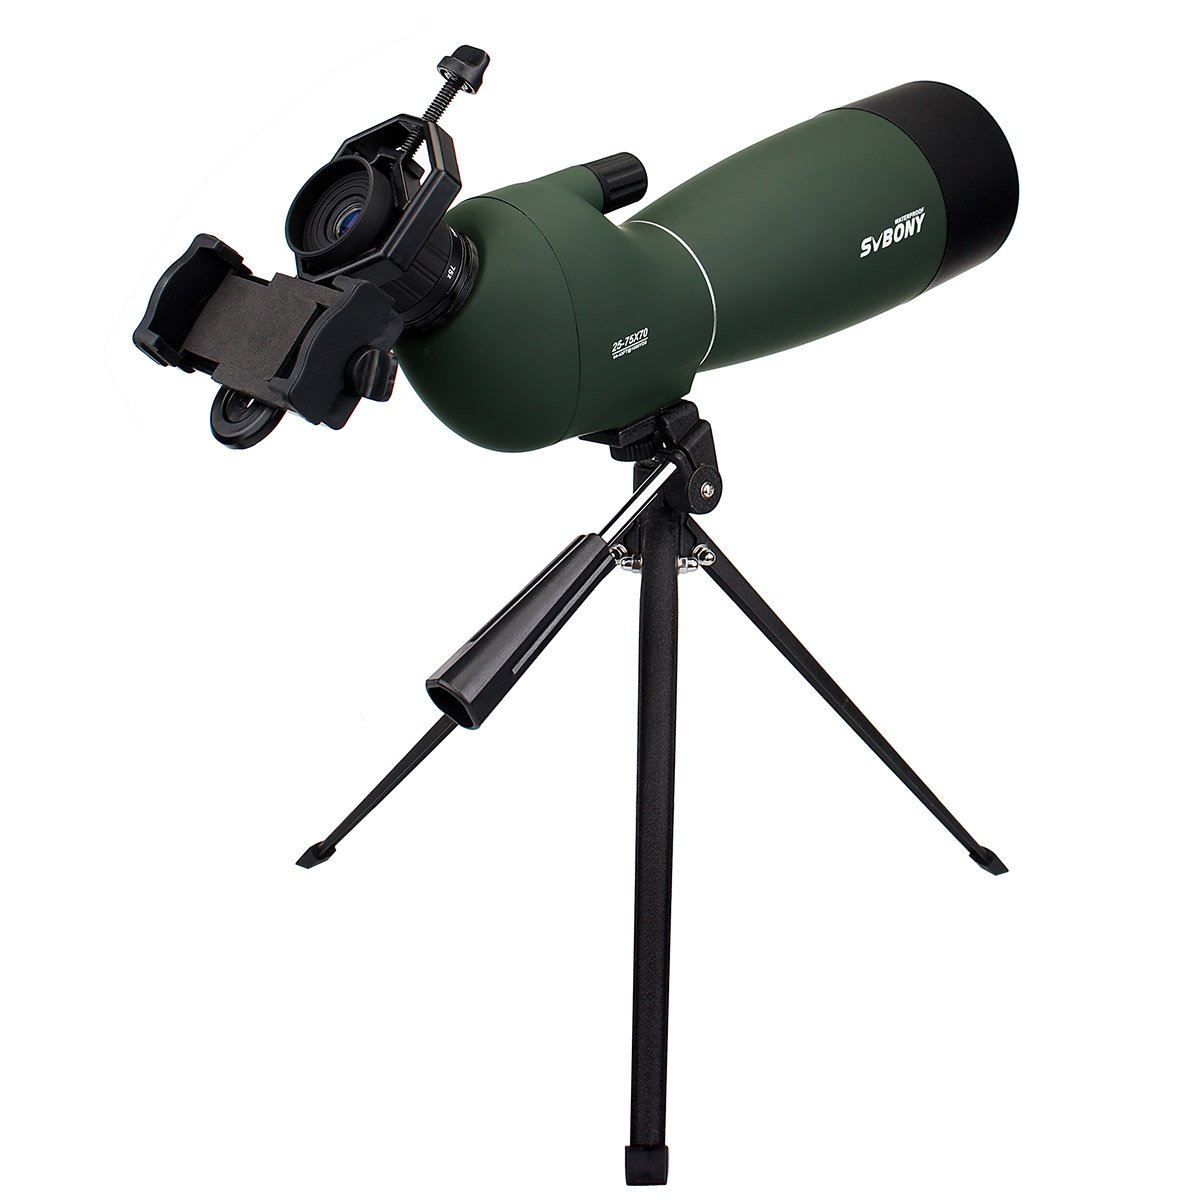 SVBONY Spotting Scope Telescope 25-75x70mm Bird Scopes for Shooting Birdwatching Scope in Shooting Range Bak4 Prism with Tripod and Phone Adapter by SVBONY